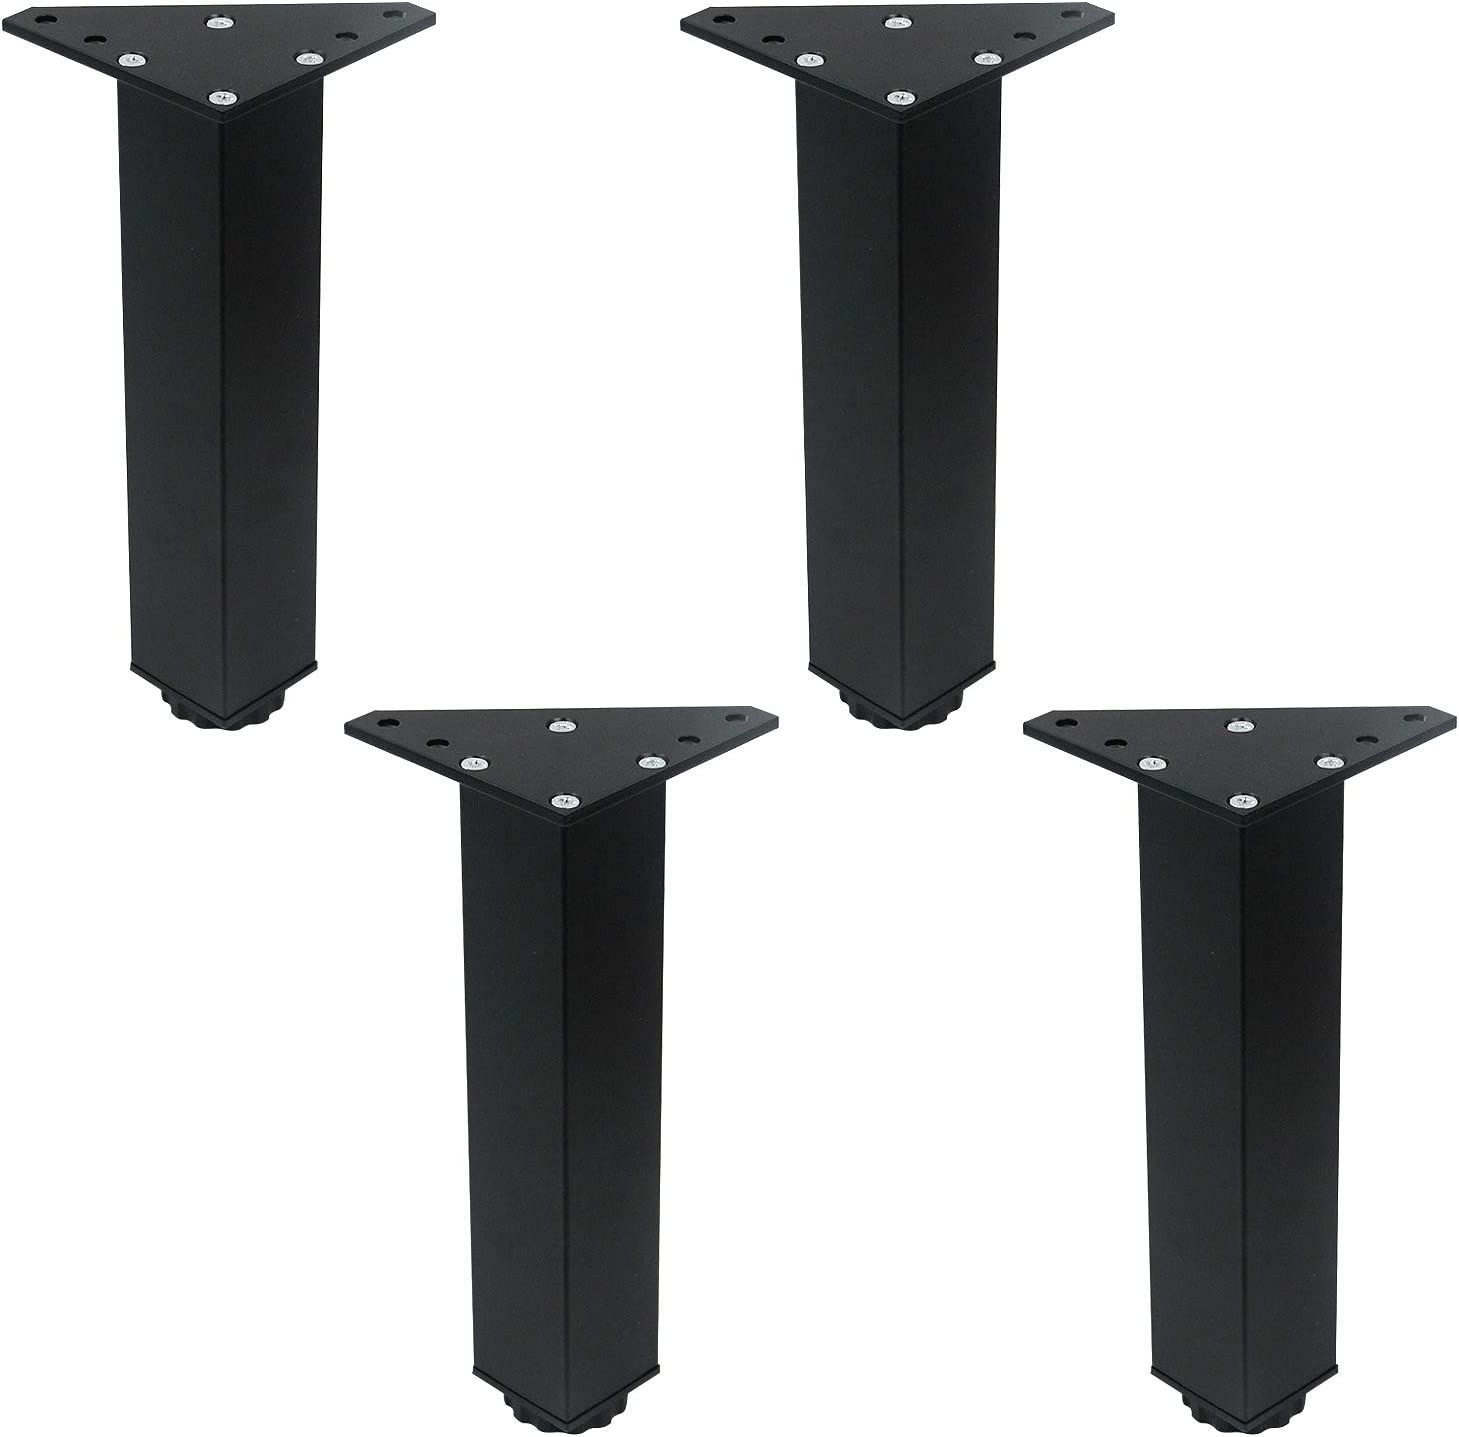 Tulead 200mm Height Adjustable Furniture Legs Cabinet Feet Replacement Sofa Legs Aluminum Cabinet Bed Wardrobe Feet Pack of 4 with Screws (Black)